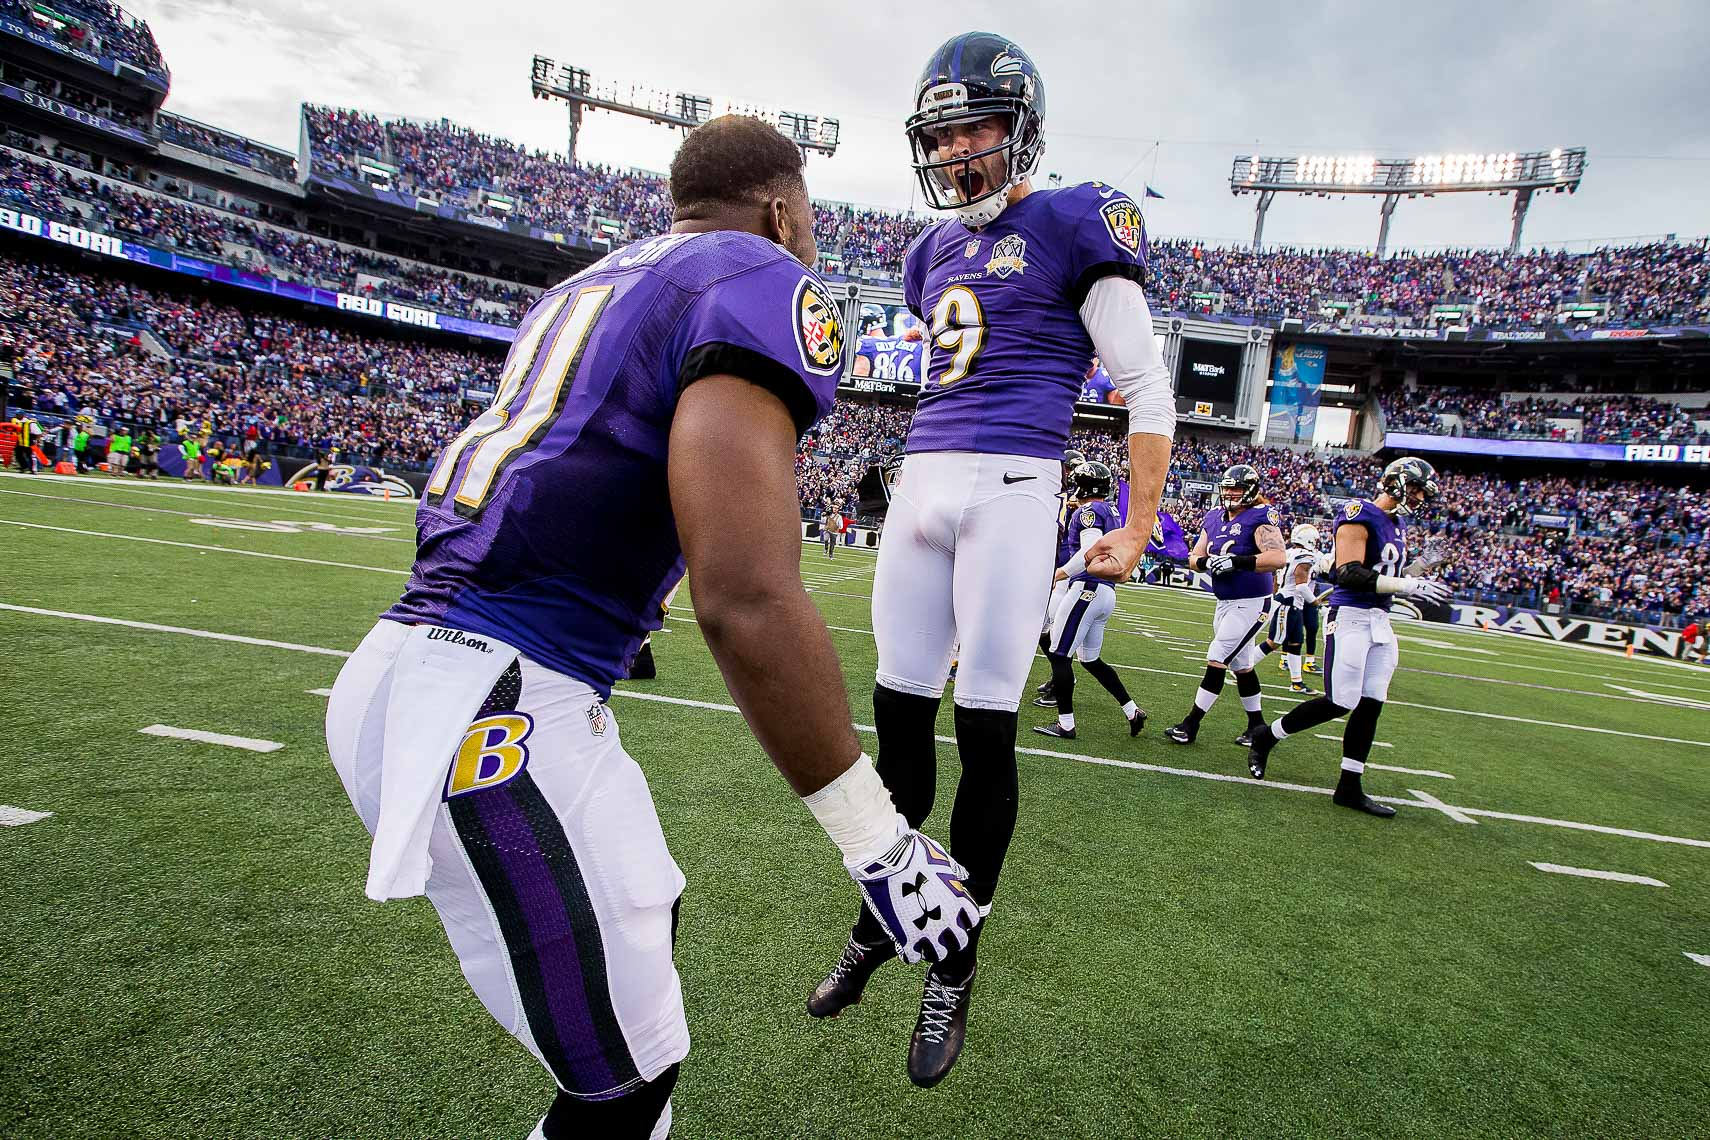 ravens30  NFL Baltimore Ravens photos NFL behind the scenes documentary sports photographer photo of kicker Justin Tucker